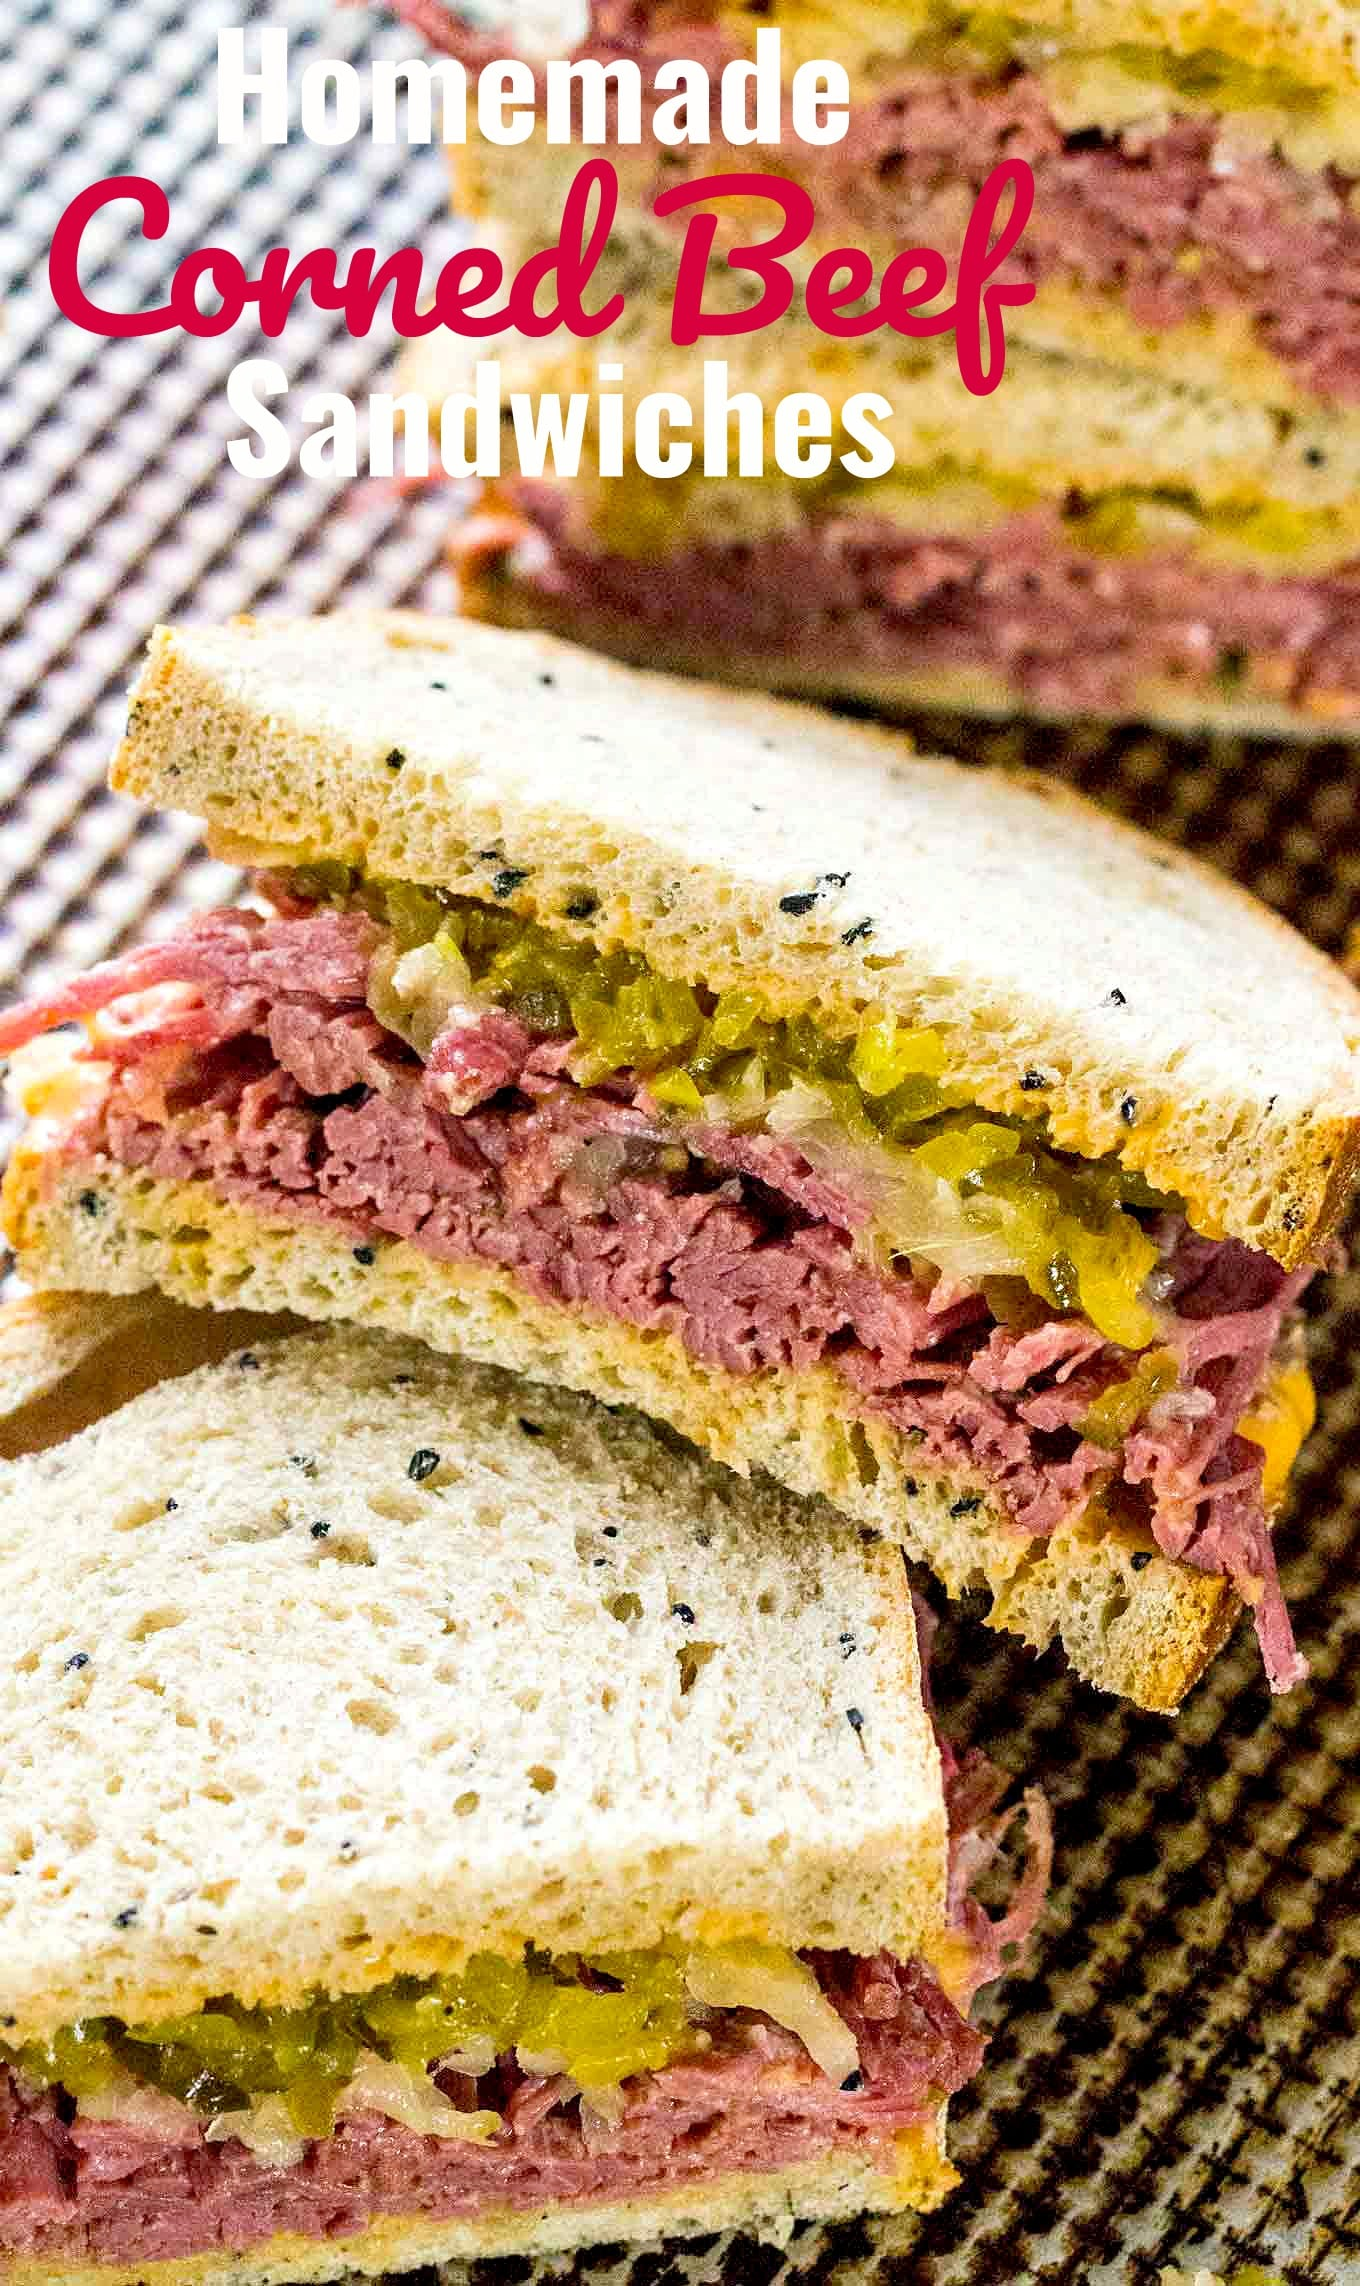 Homemade Corned Beef Sandwiches Recipe